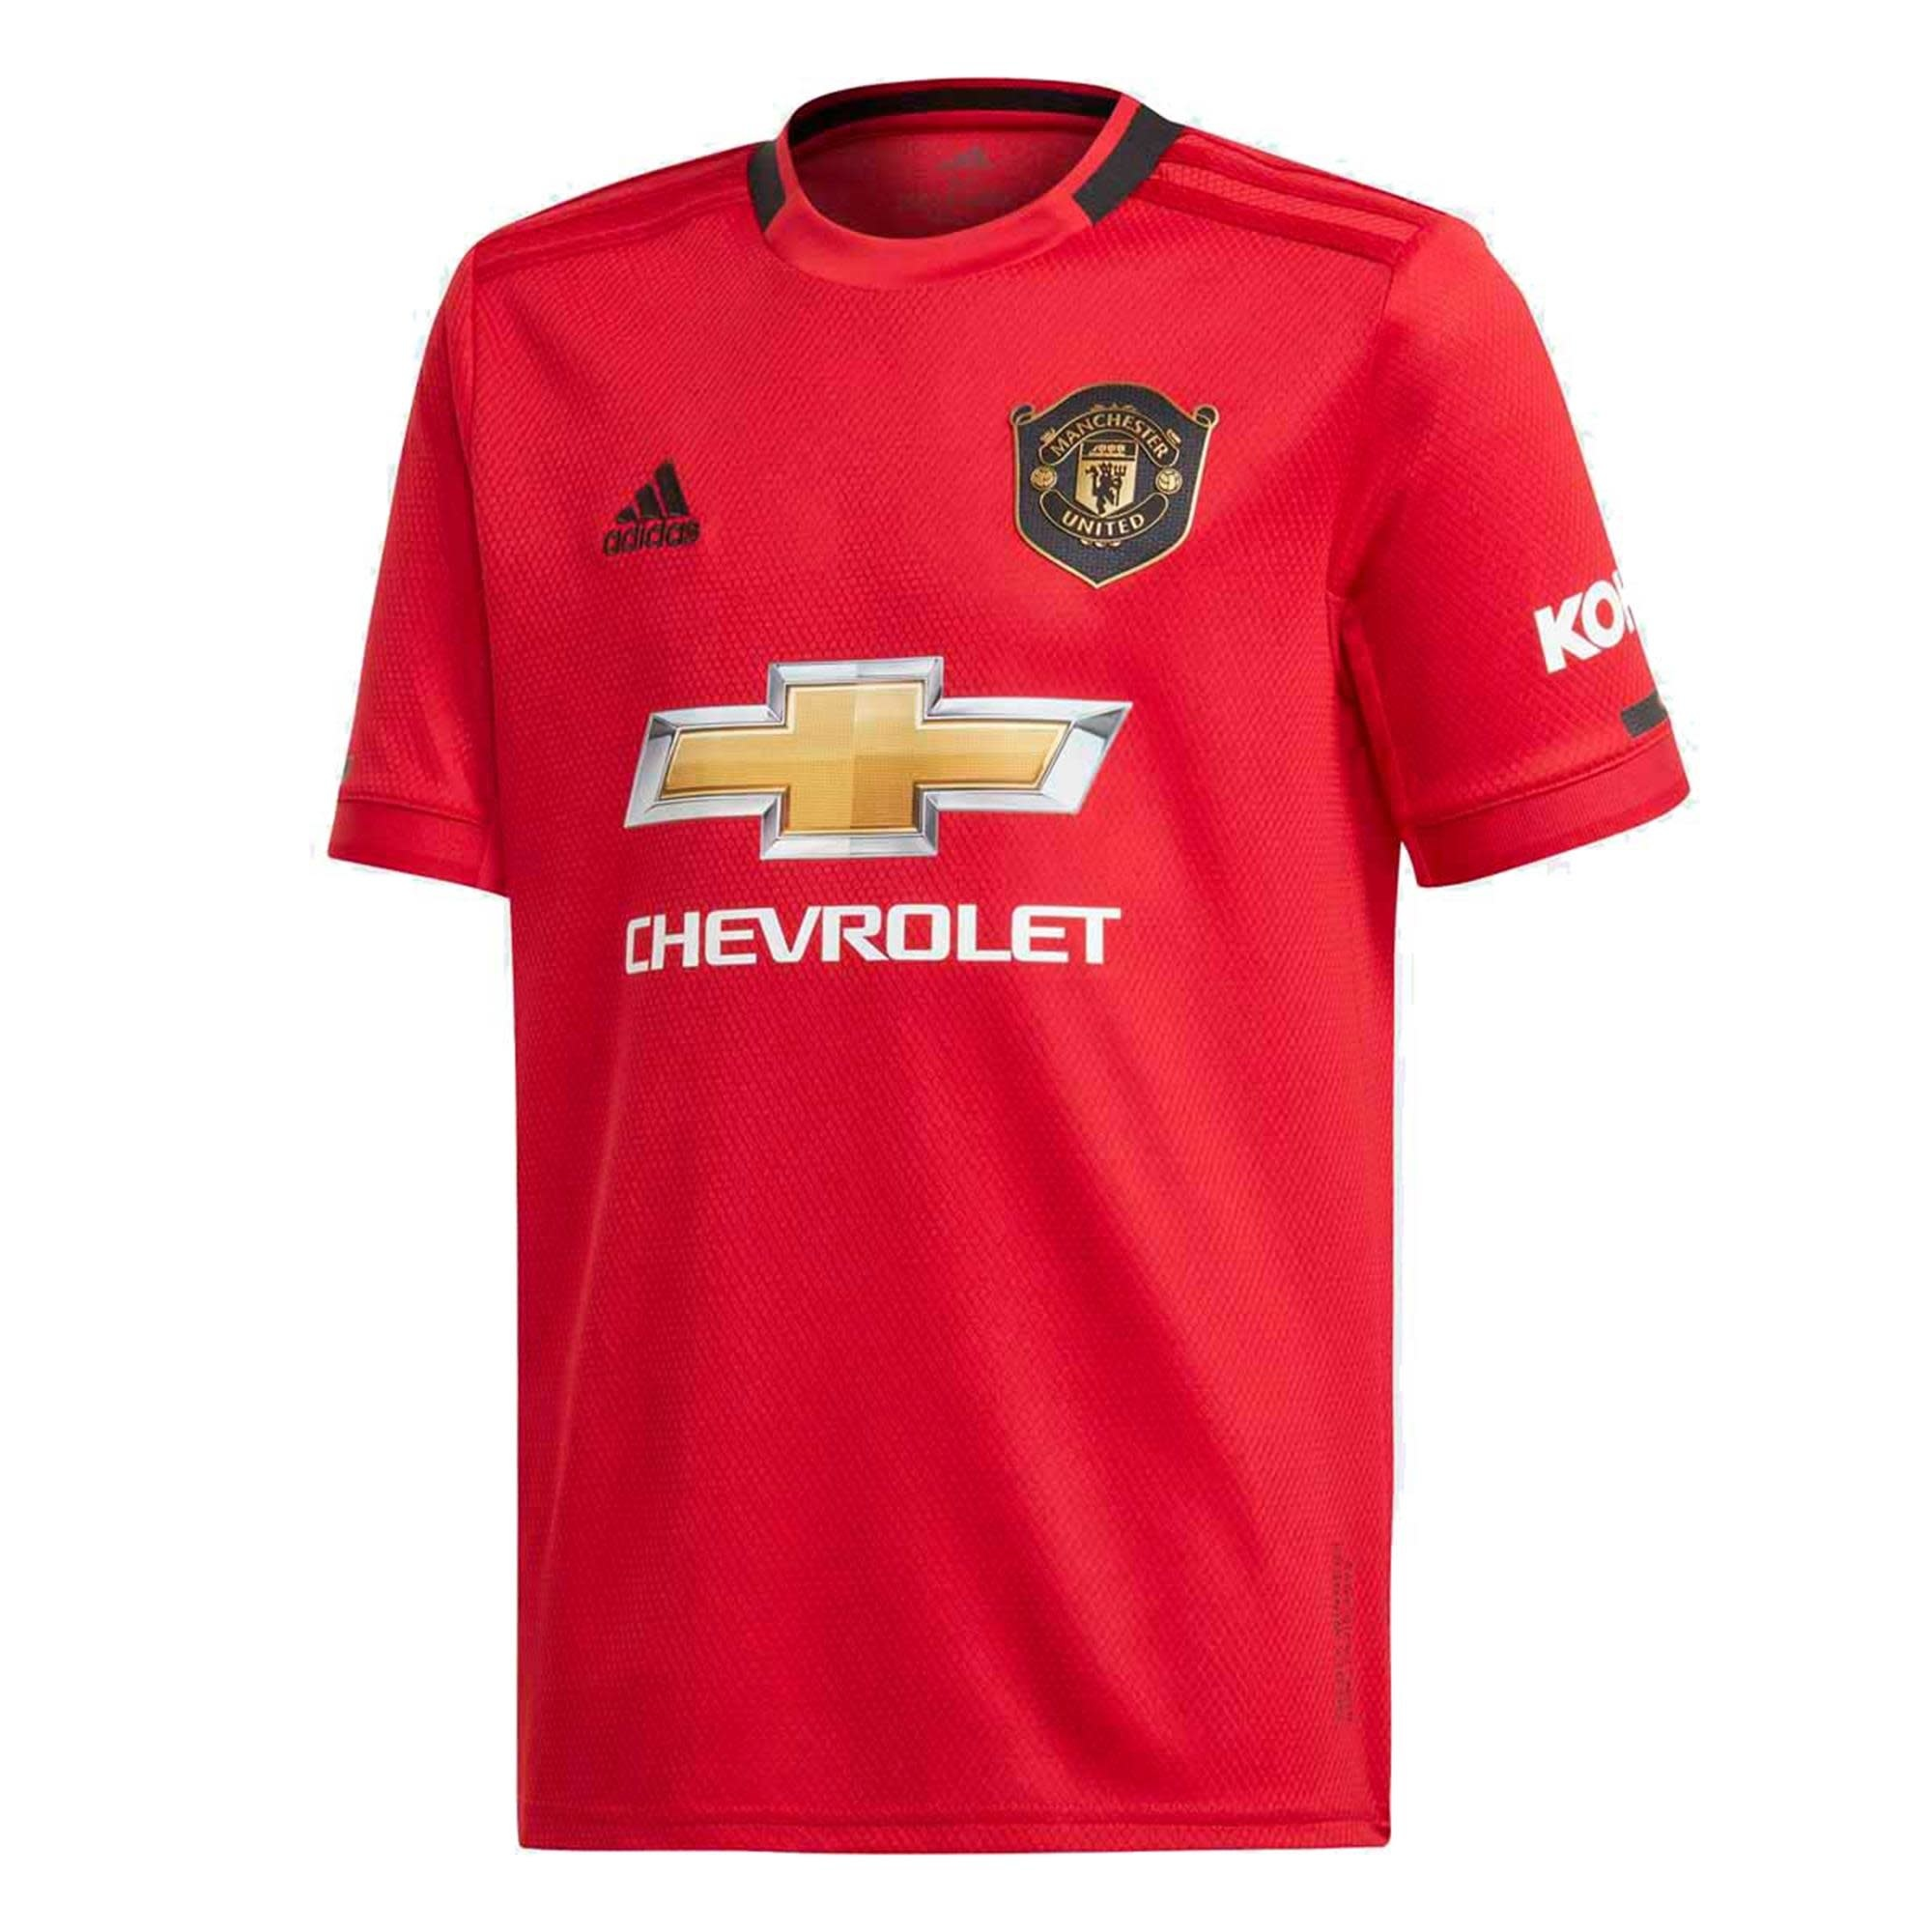 Adidas ADIDAS JR Manchester United Home Jersey '19-'20